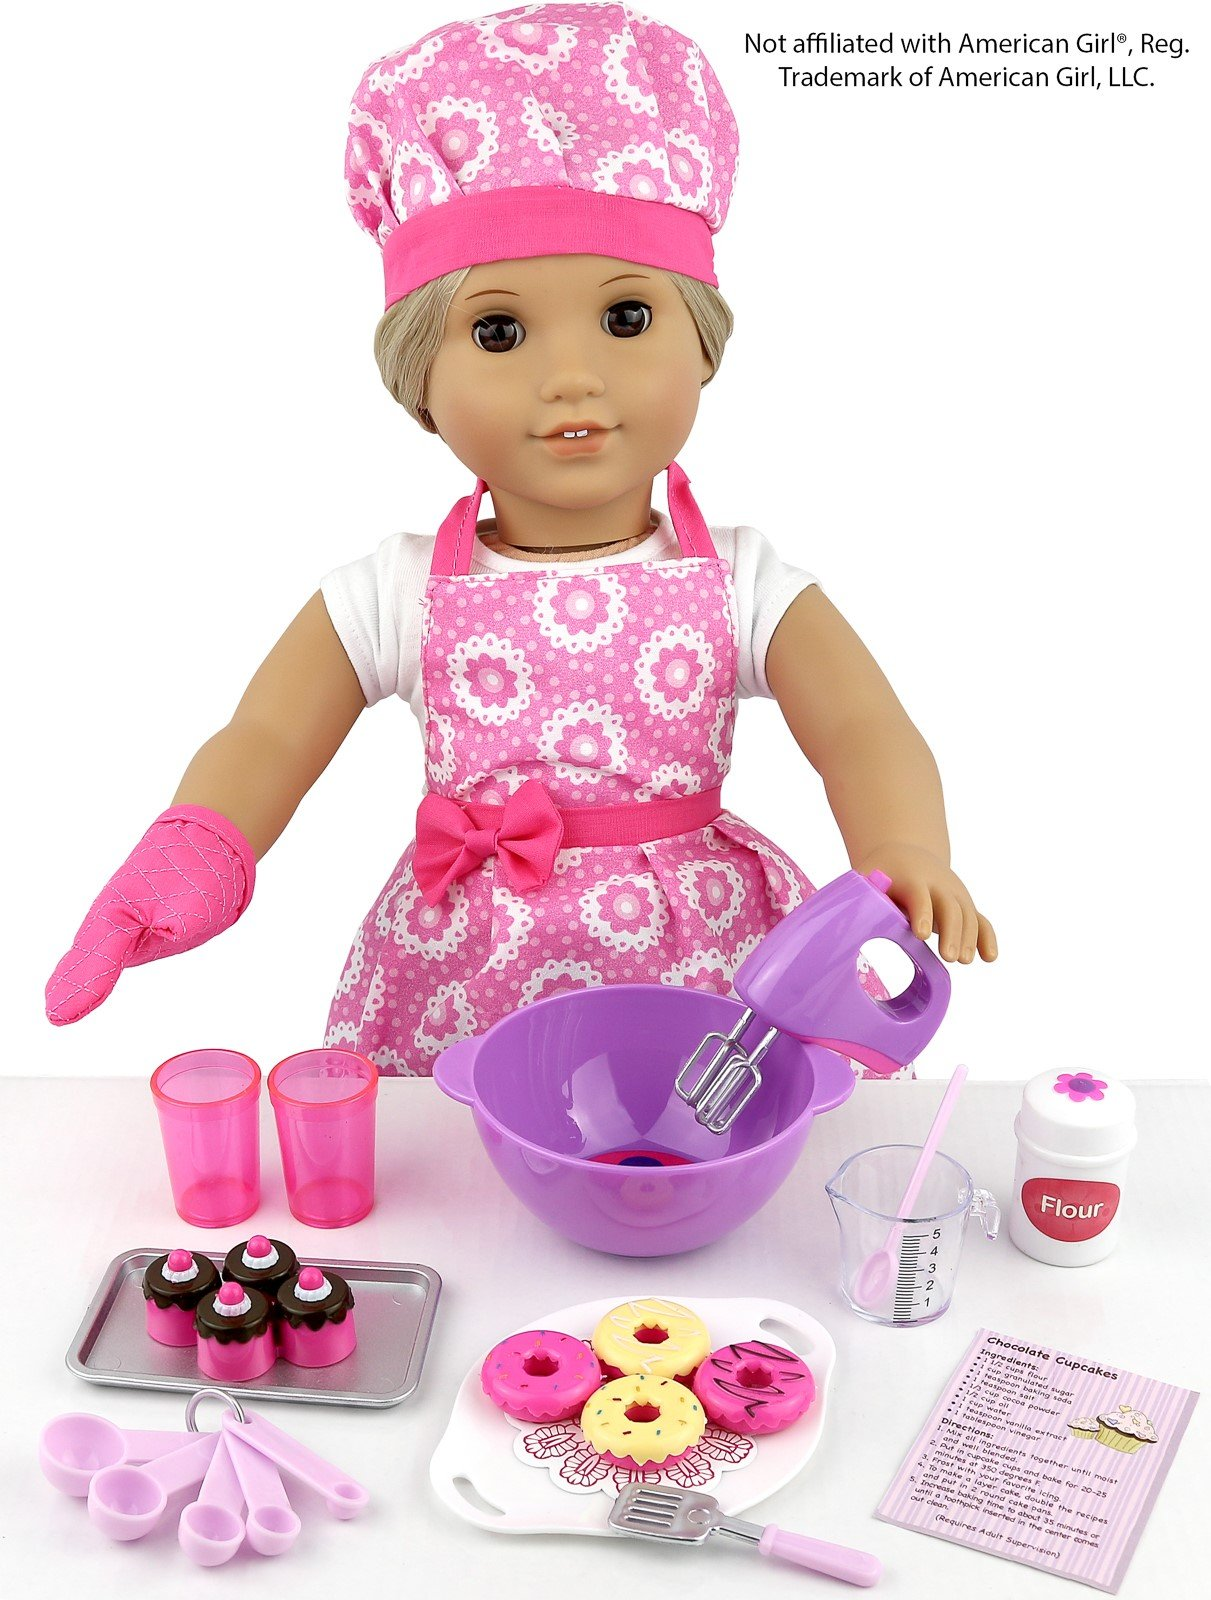 Click N' Play Doll Baking Set with Apron and Baking Utensil Accessories, Perfect for 18 inch American Girl Dolls by Click N' Play (Image #3)